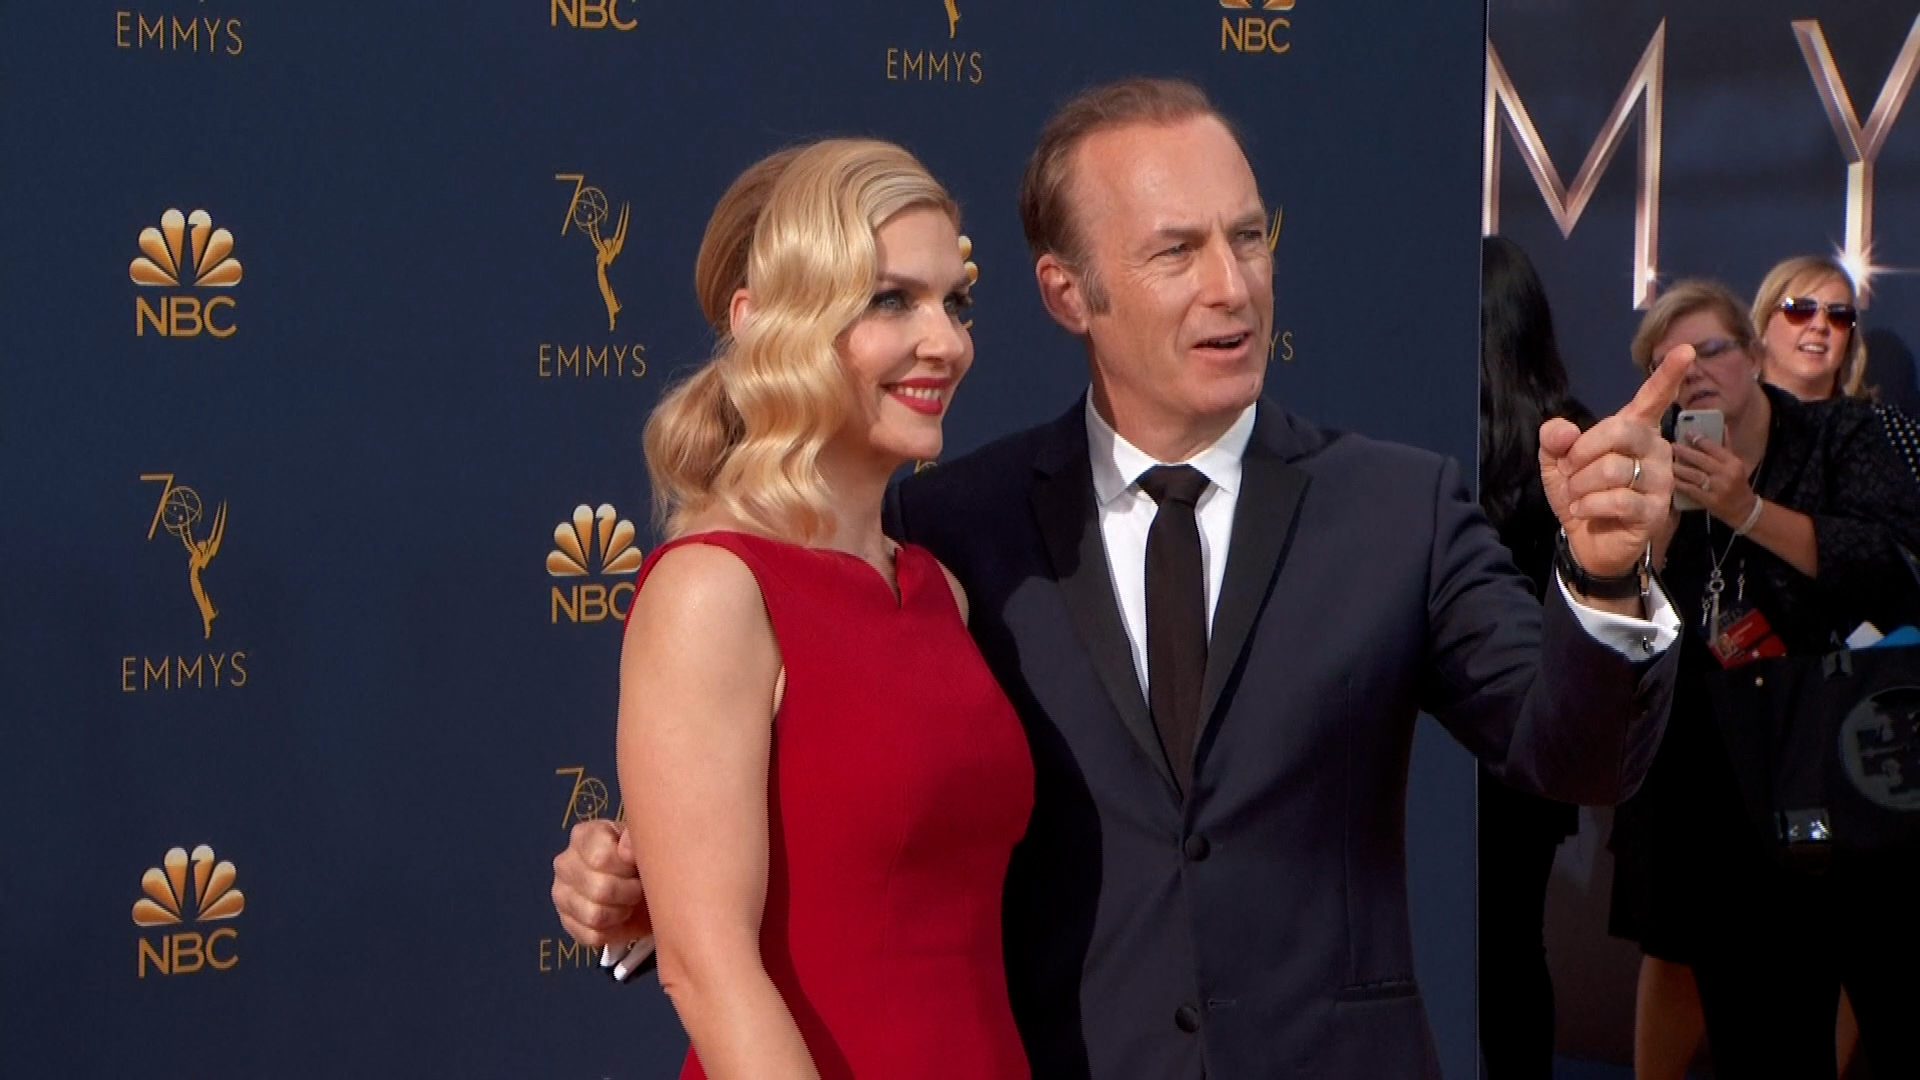 Bob Odenkirk tweets he is 'back to work' on 'Better Call Saul' after heart attack